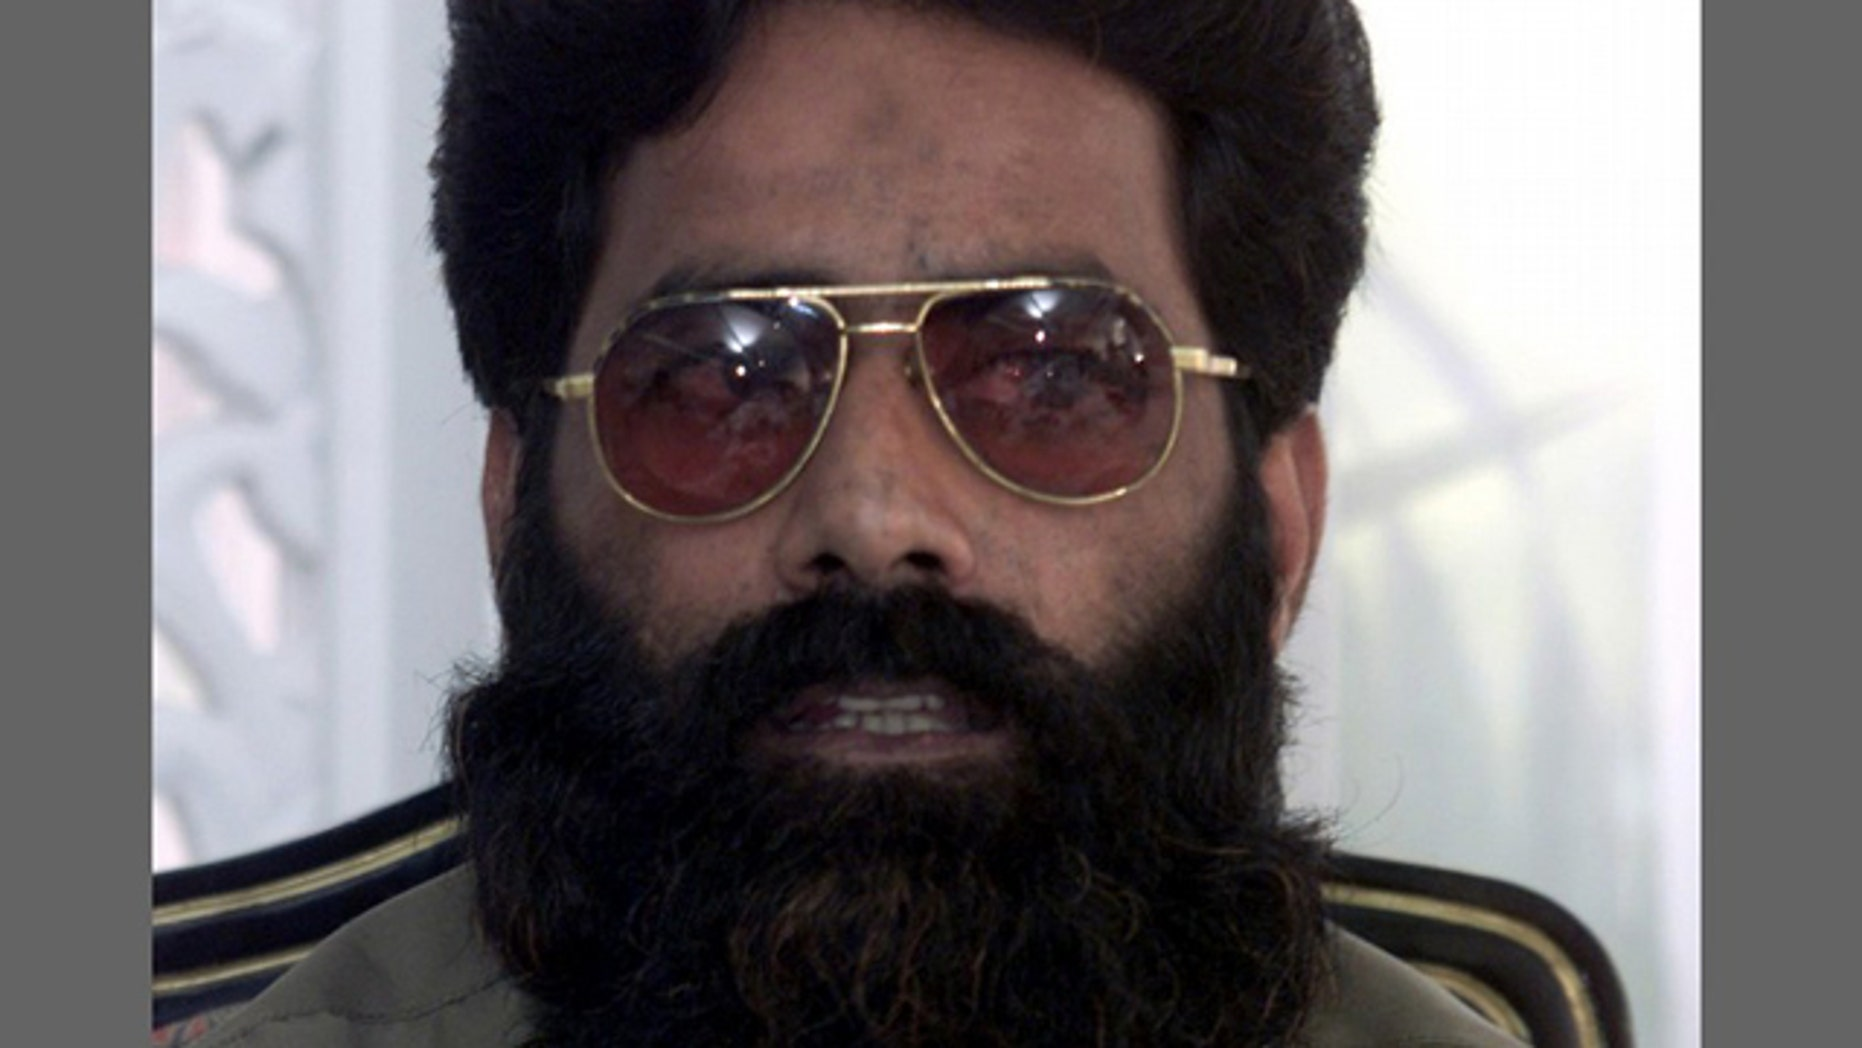 Ilyas Kashmiri speaks during a news conference in Islamabad in this July 11, 2001 file photo. Senior al Qaeda operative Kashmiri, regarded as one of the most dangerous militants in the world, was killed by a U.S. drone aircraft missile strike in Pakistan, an intelligence official and local media said.